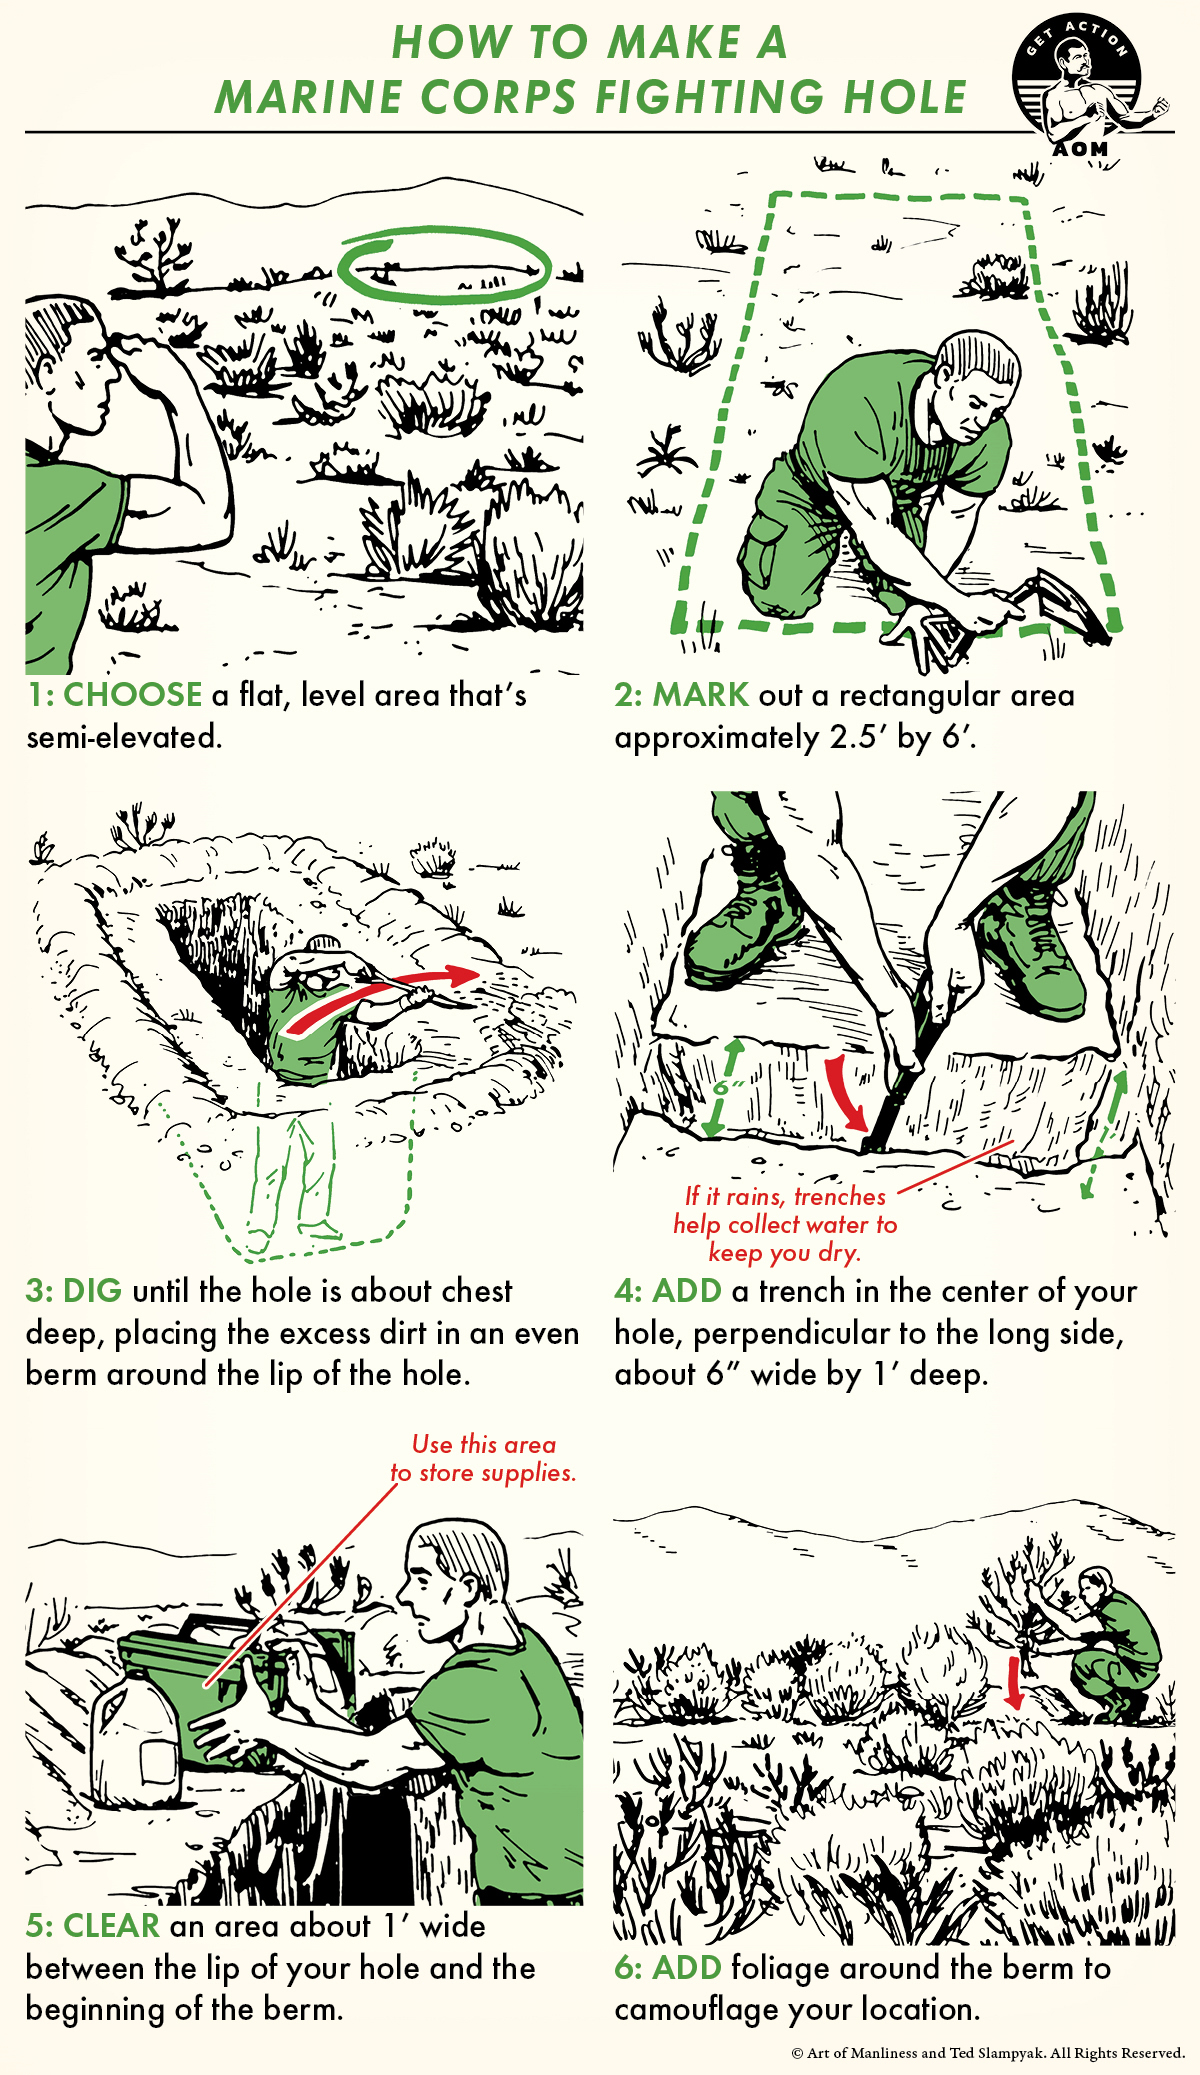 Basic steps illustrated for making a marine corps fighting hole.